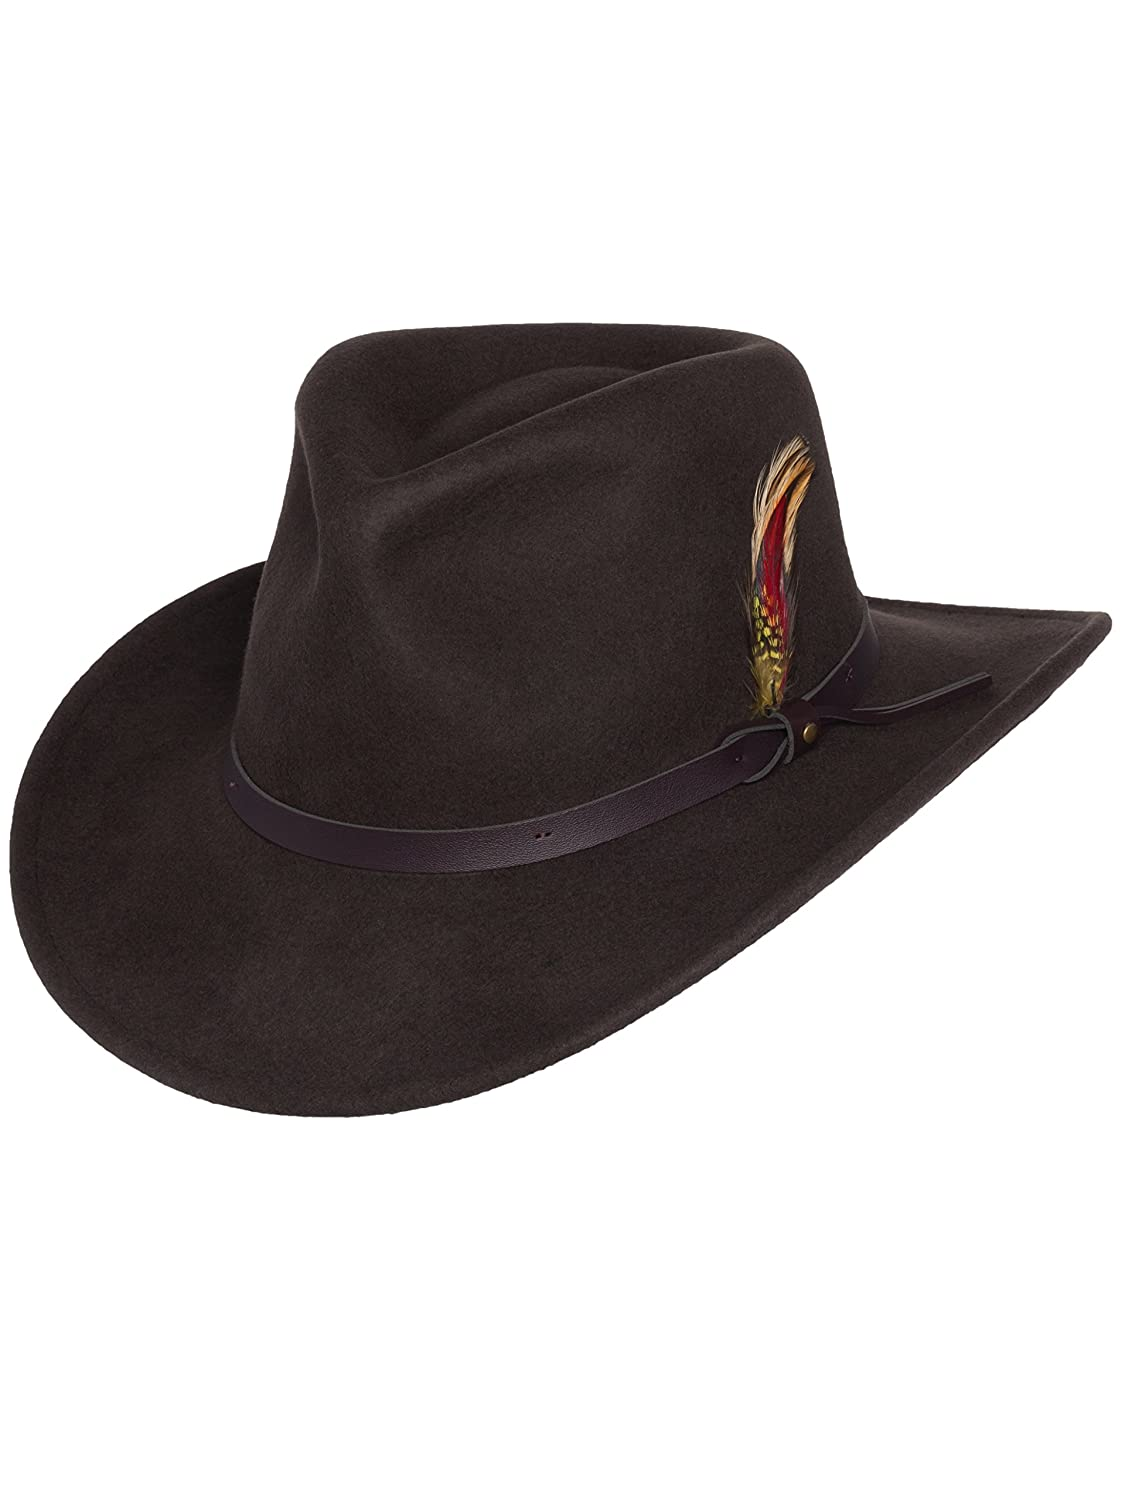 Men's Outback Wool Cowboy Hat |Montana Black Crushable Western Felt by Silver Canyon Silver Canyon Boot and Clothing Company SCHW0002